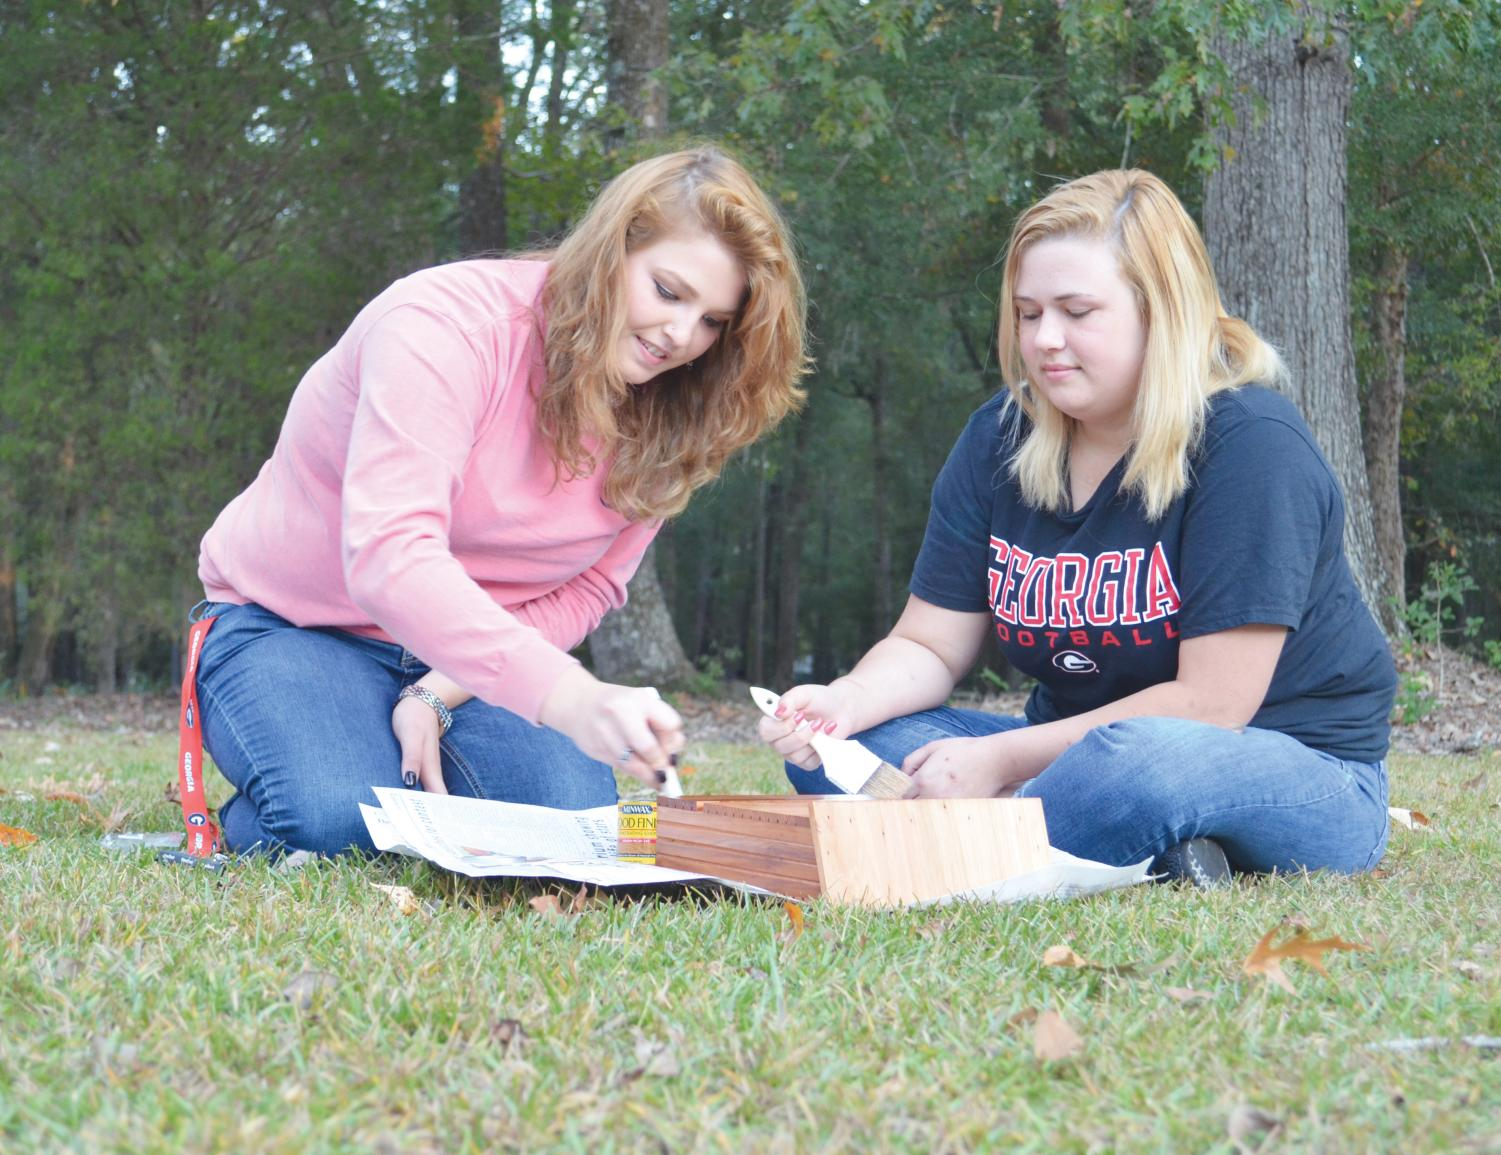 The Biology Club preserves the environment by protecting bats. Bats provide ecosystem services on the FMU campus.